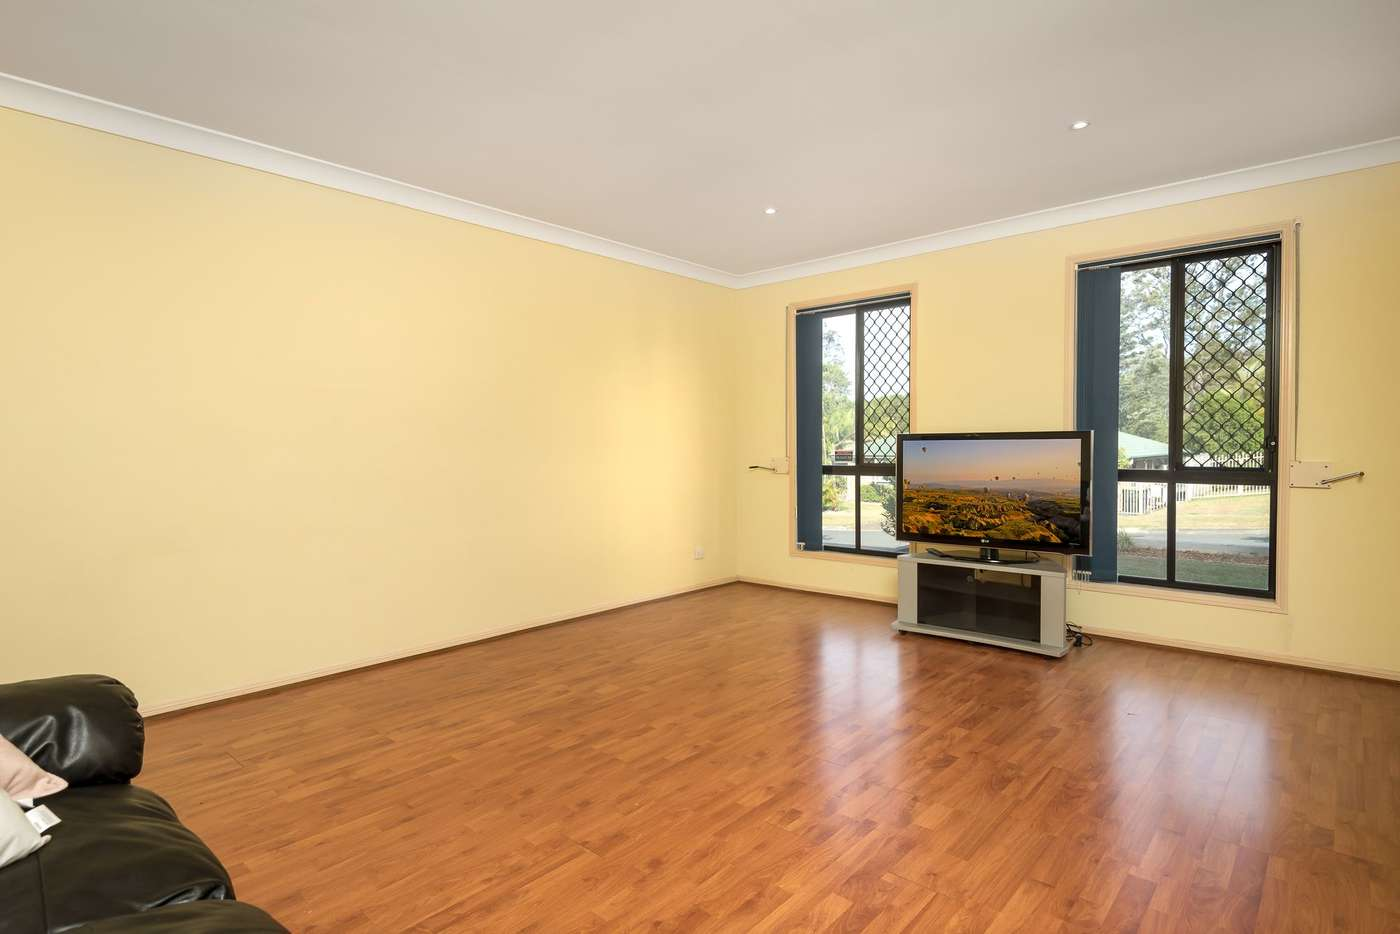 Fifth view of Homely house listing, 148 Rubicon Crescent, Kuraby QLD 4112